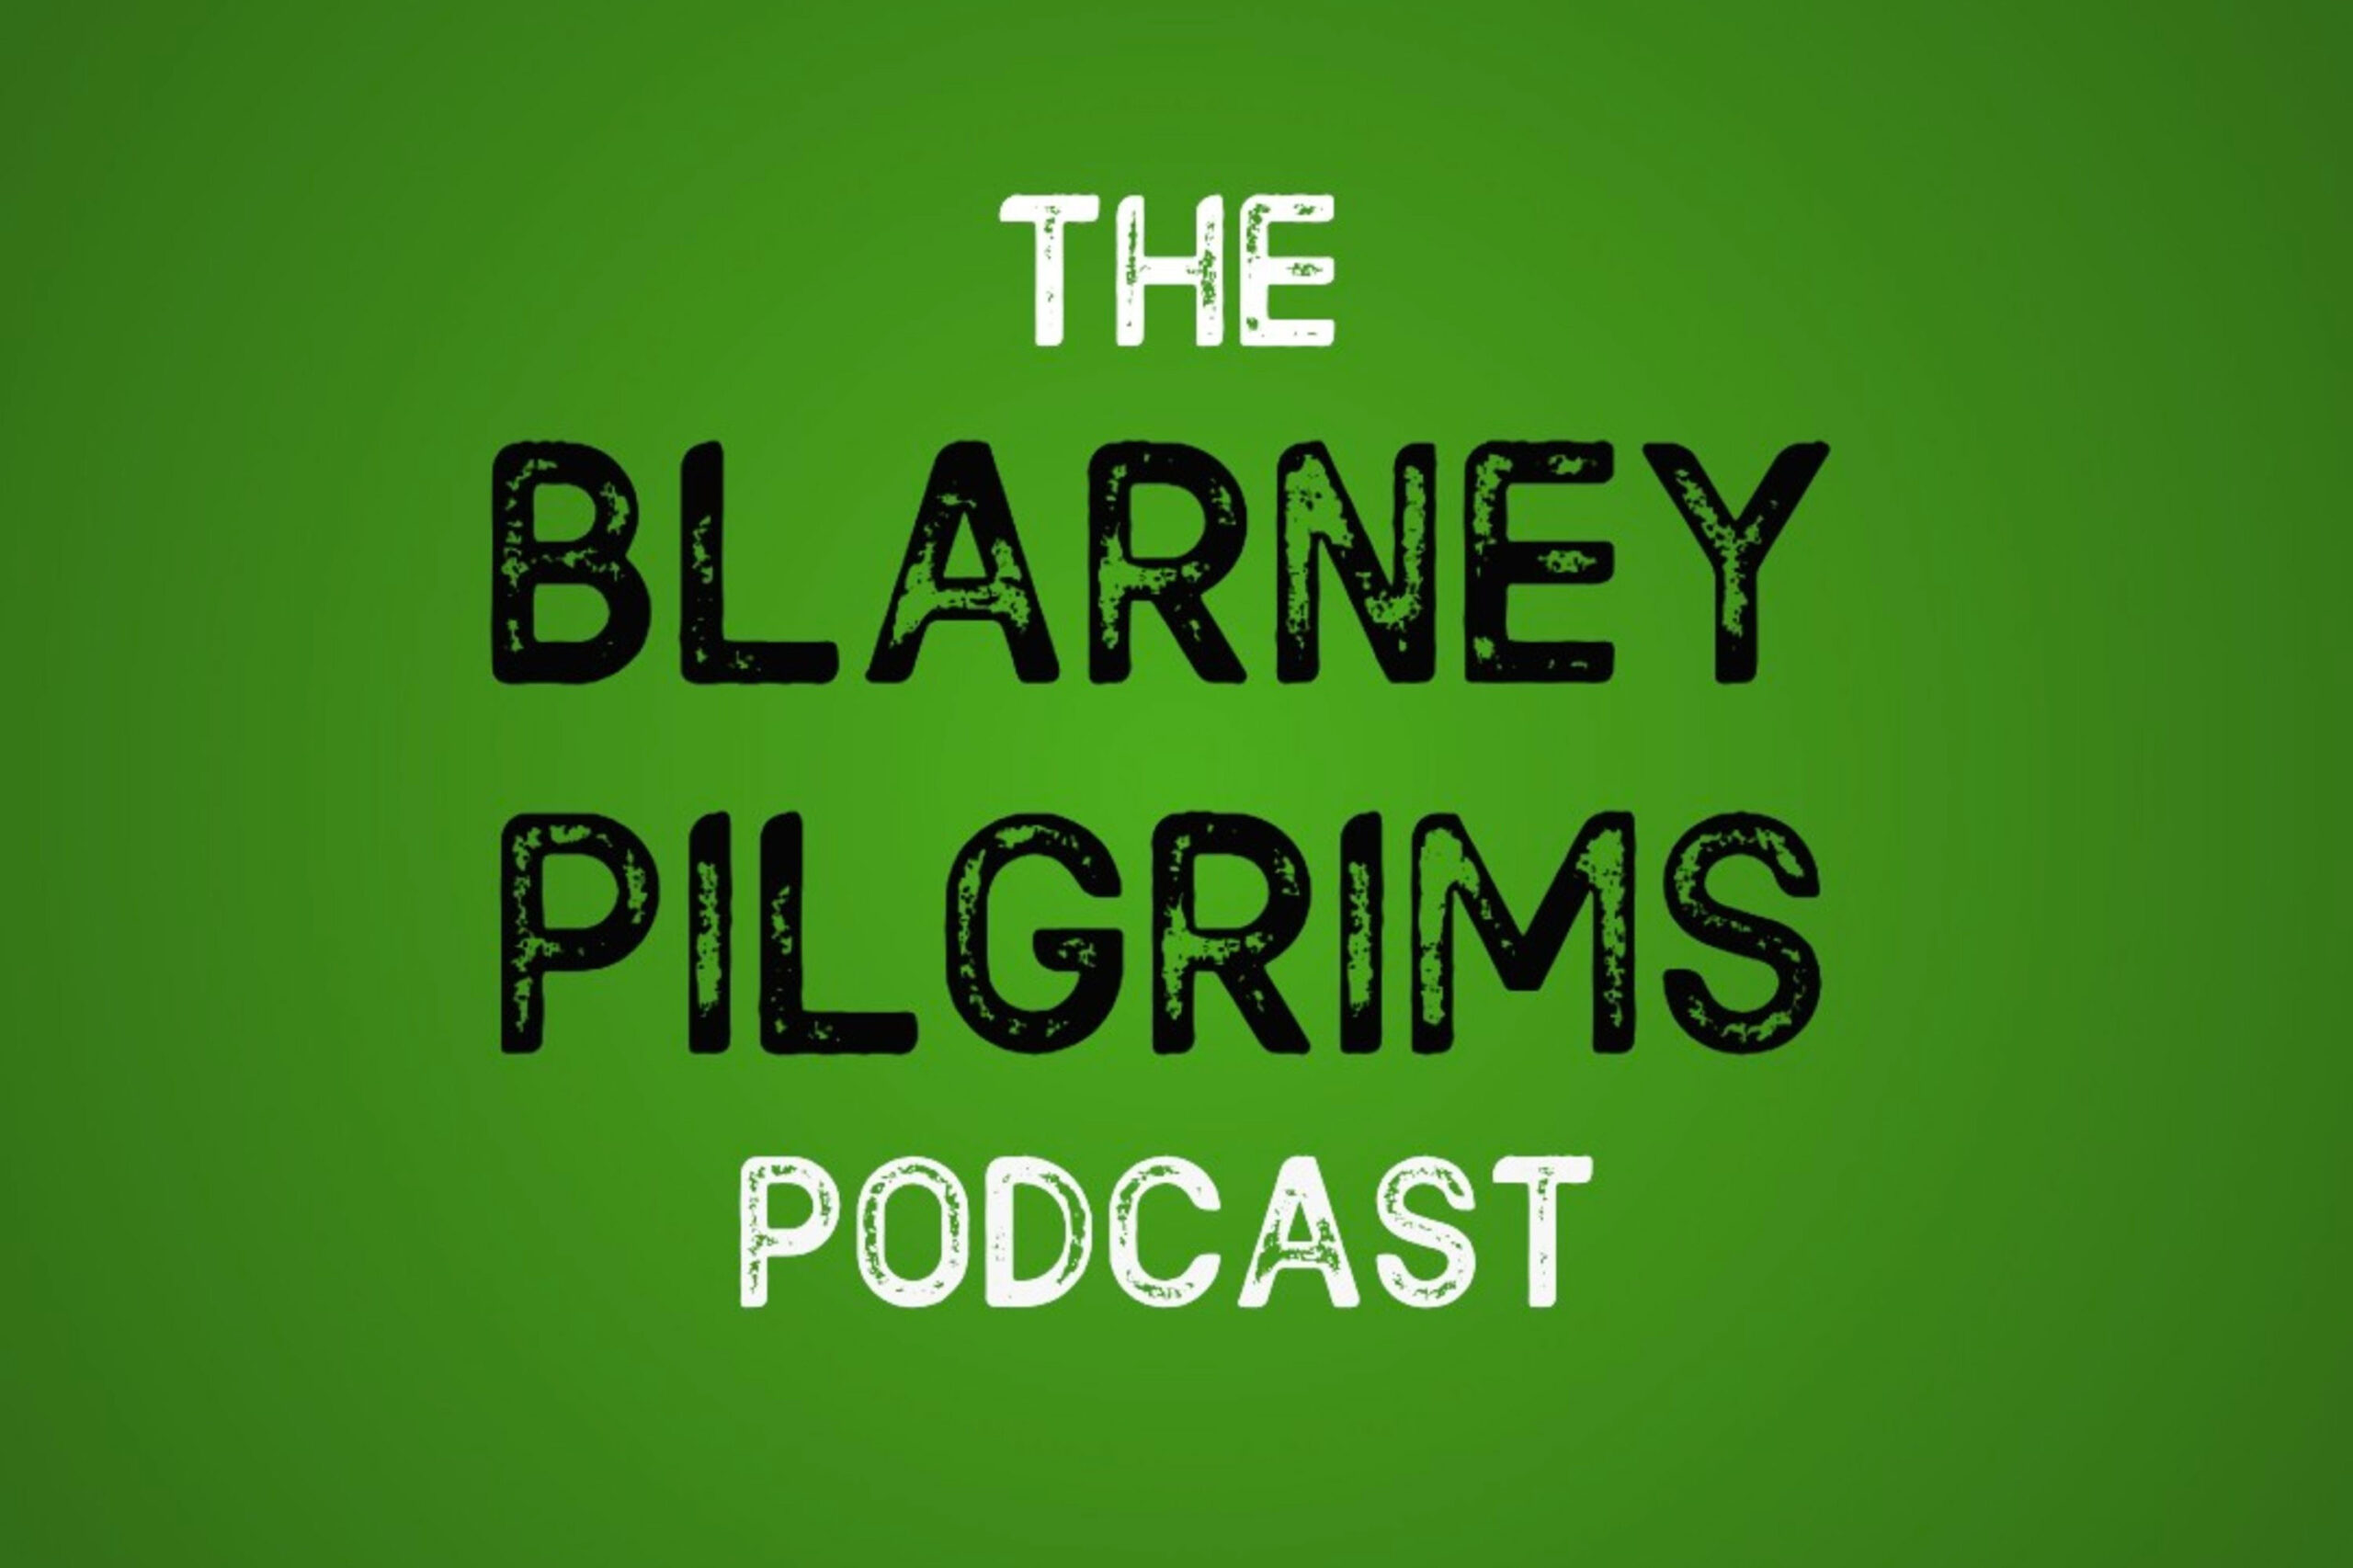 The Blarney Pilgrims Podcast Interview